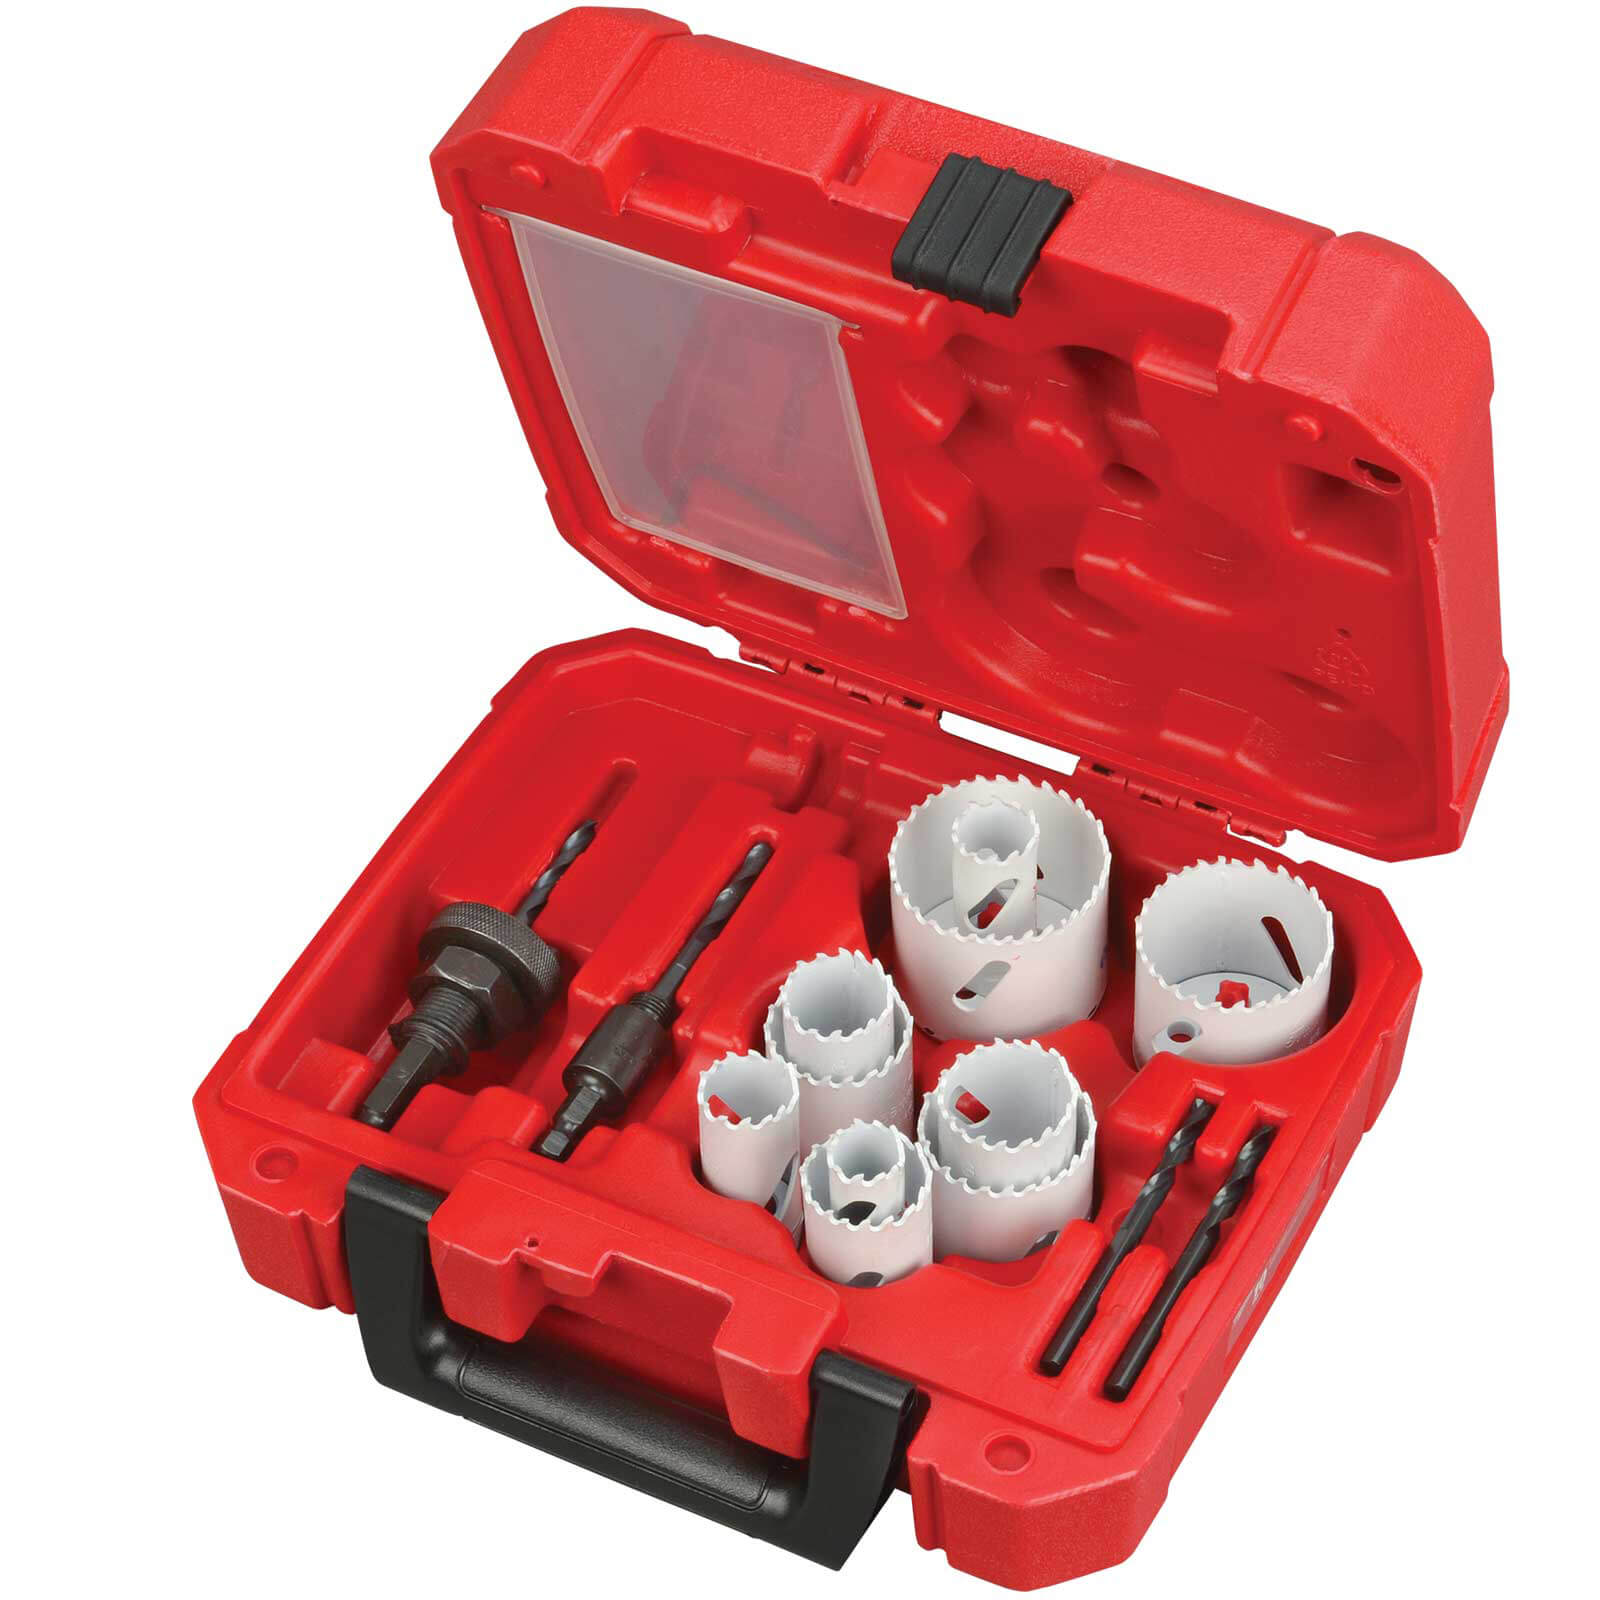 Image of Milwaukee 14 Piece Hole Dozer Bi-Metal Holesaw Set